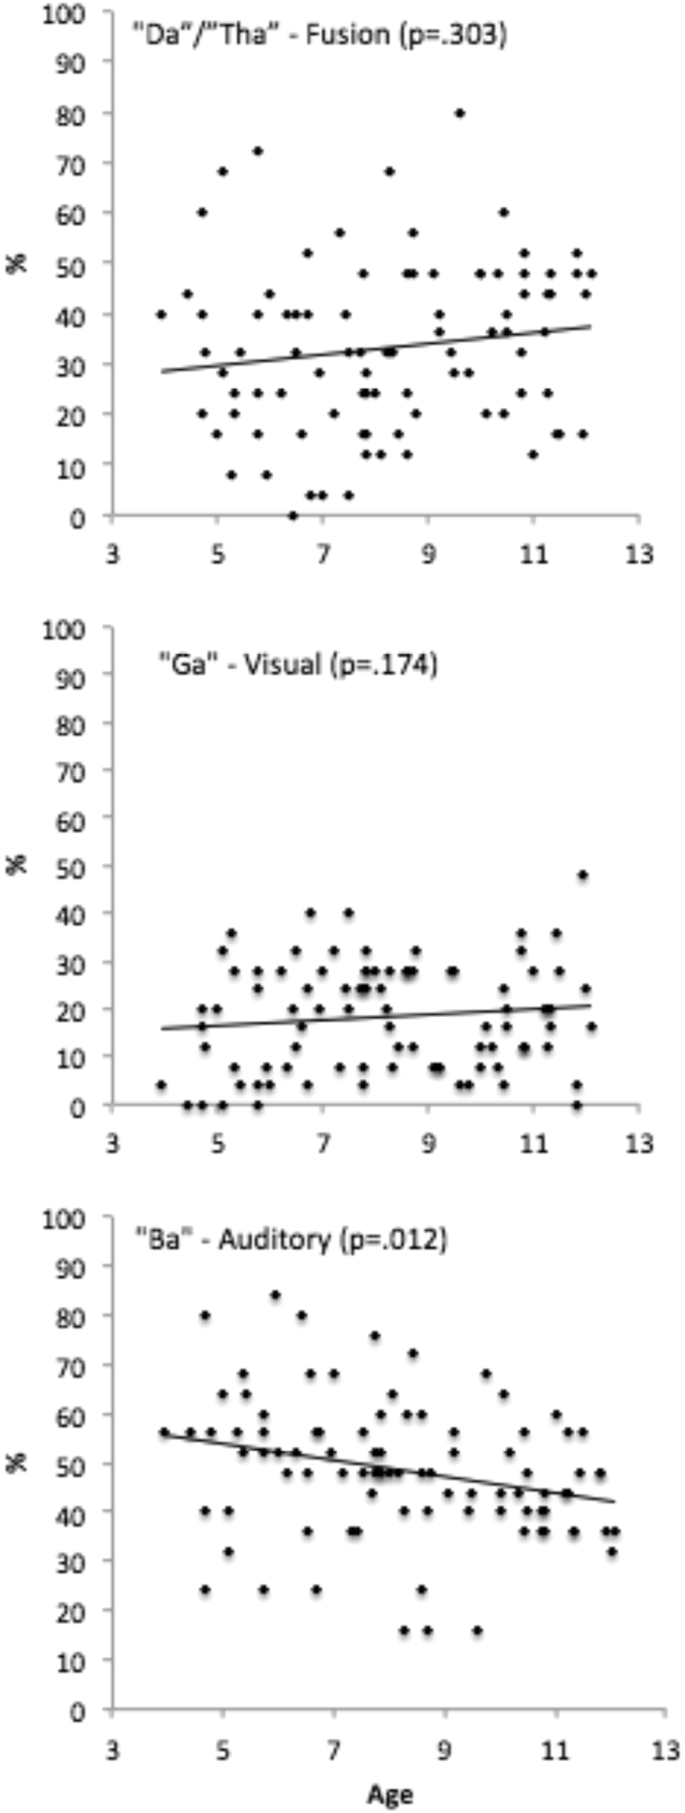 The threshold for the McGurk effect in audio-visual noise decreases